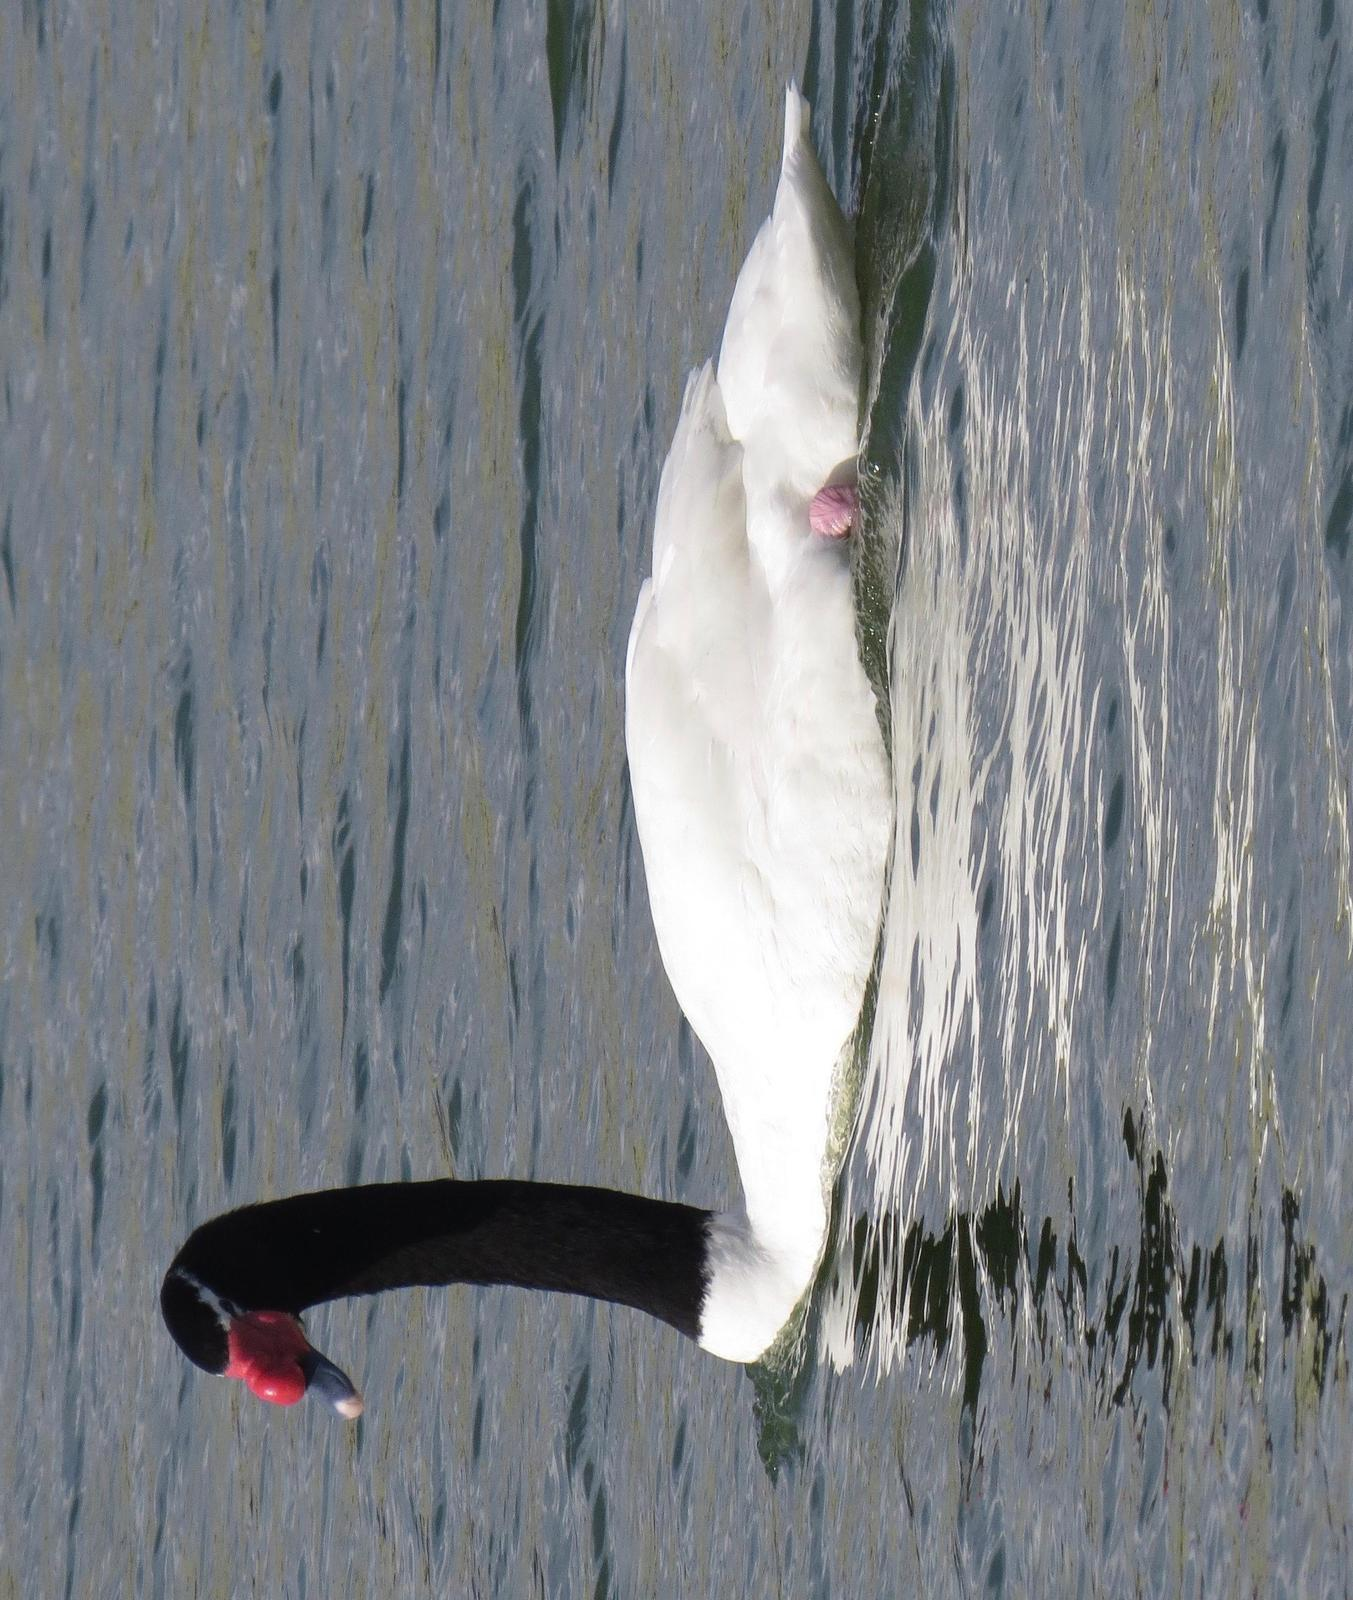 Black-necked Swan Photo by Don Glasco